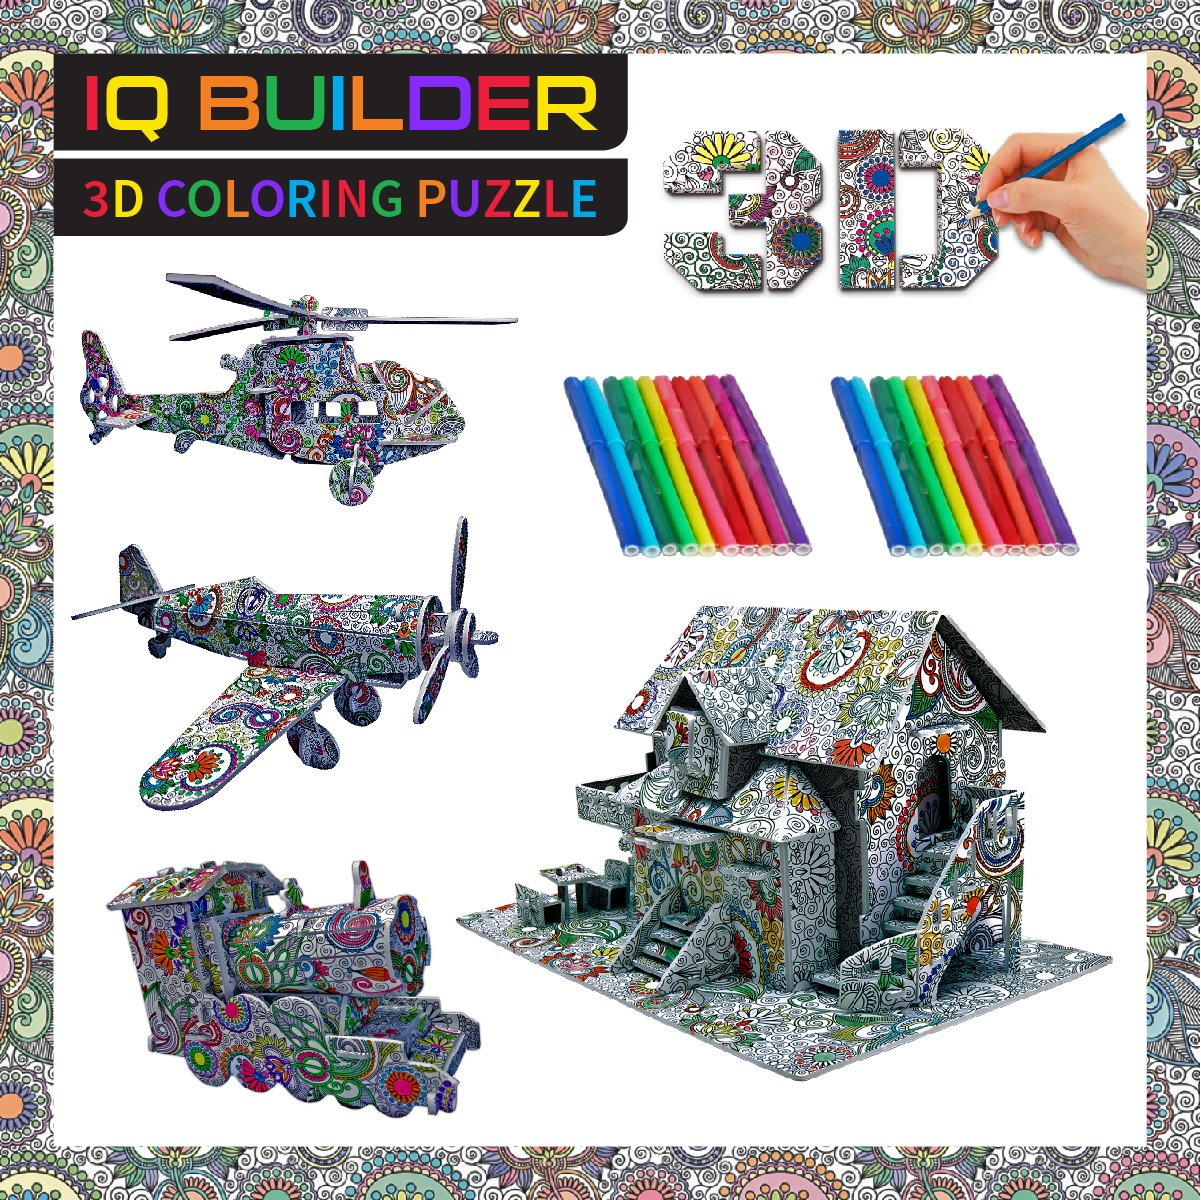 IQ BUILDER | FUN CREATIVE DIY ARTS AND CRAFTS KIT | BEST TOY GIFT FOR GIRLS AND BOYS AGE 8 9 10 11 12 YEAR OLD | EDUCATIONAL ART BUILDING PAINTING COLORING 3D PUZZLE PROJECT SET FOR KIDS AND ADULTS Review